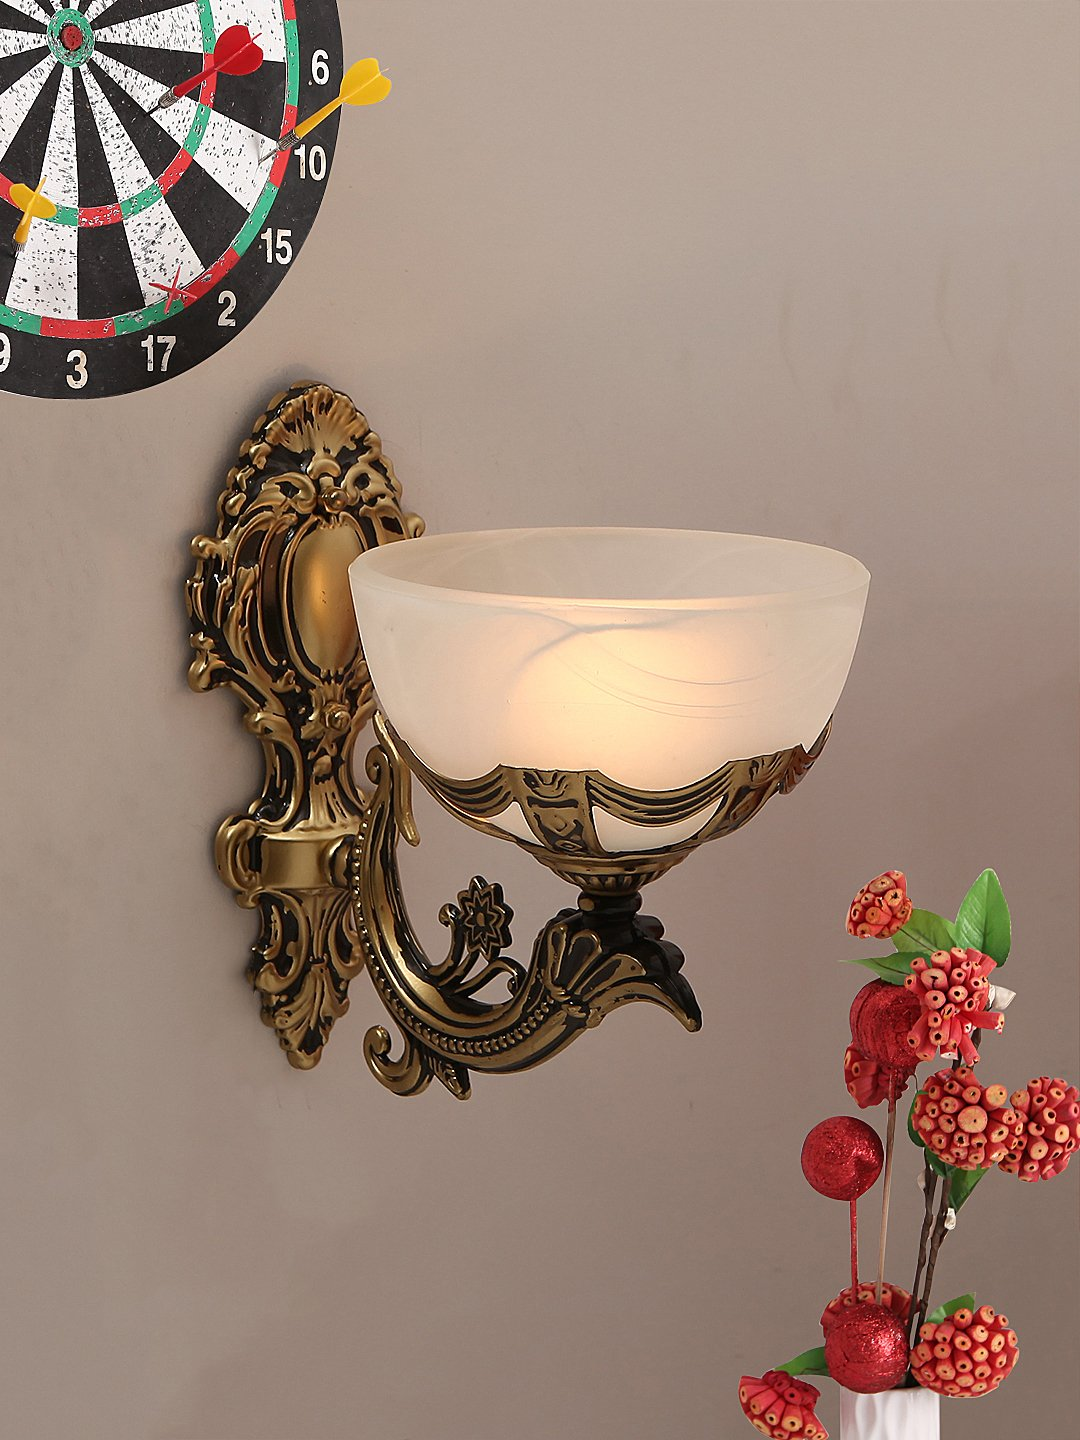 Aesthetic Home Solutions Single Shade Wall Light